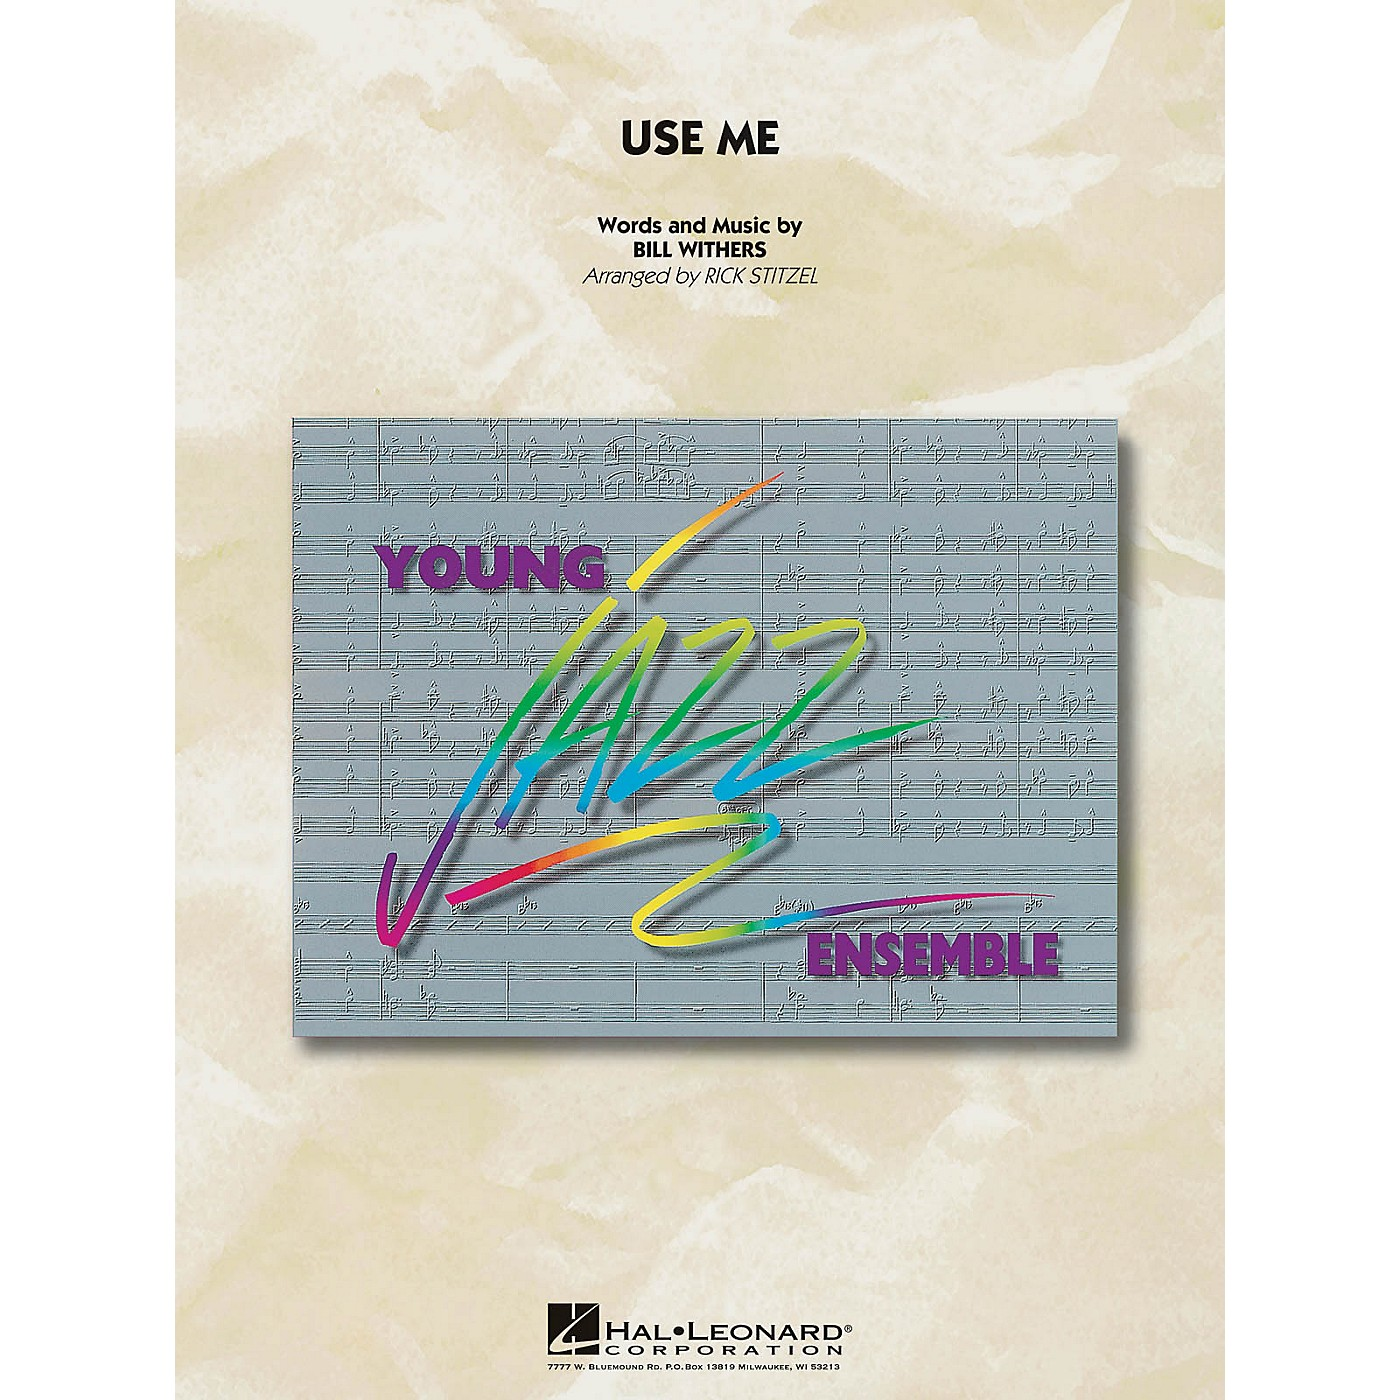 Hal Leonard Use Me Jazz Band Level 3 by Ray Boudreaux Arranged by Rick Stitzel thumbnail